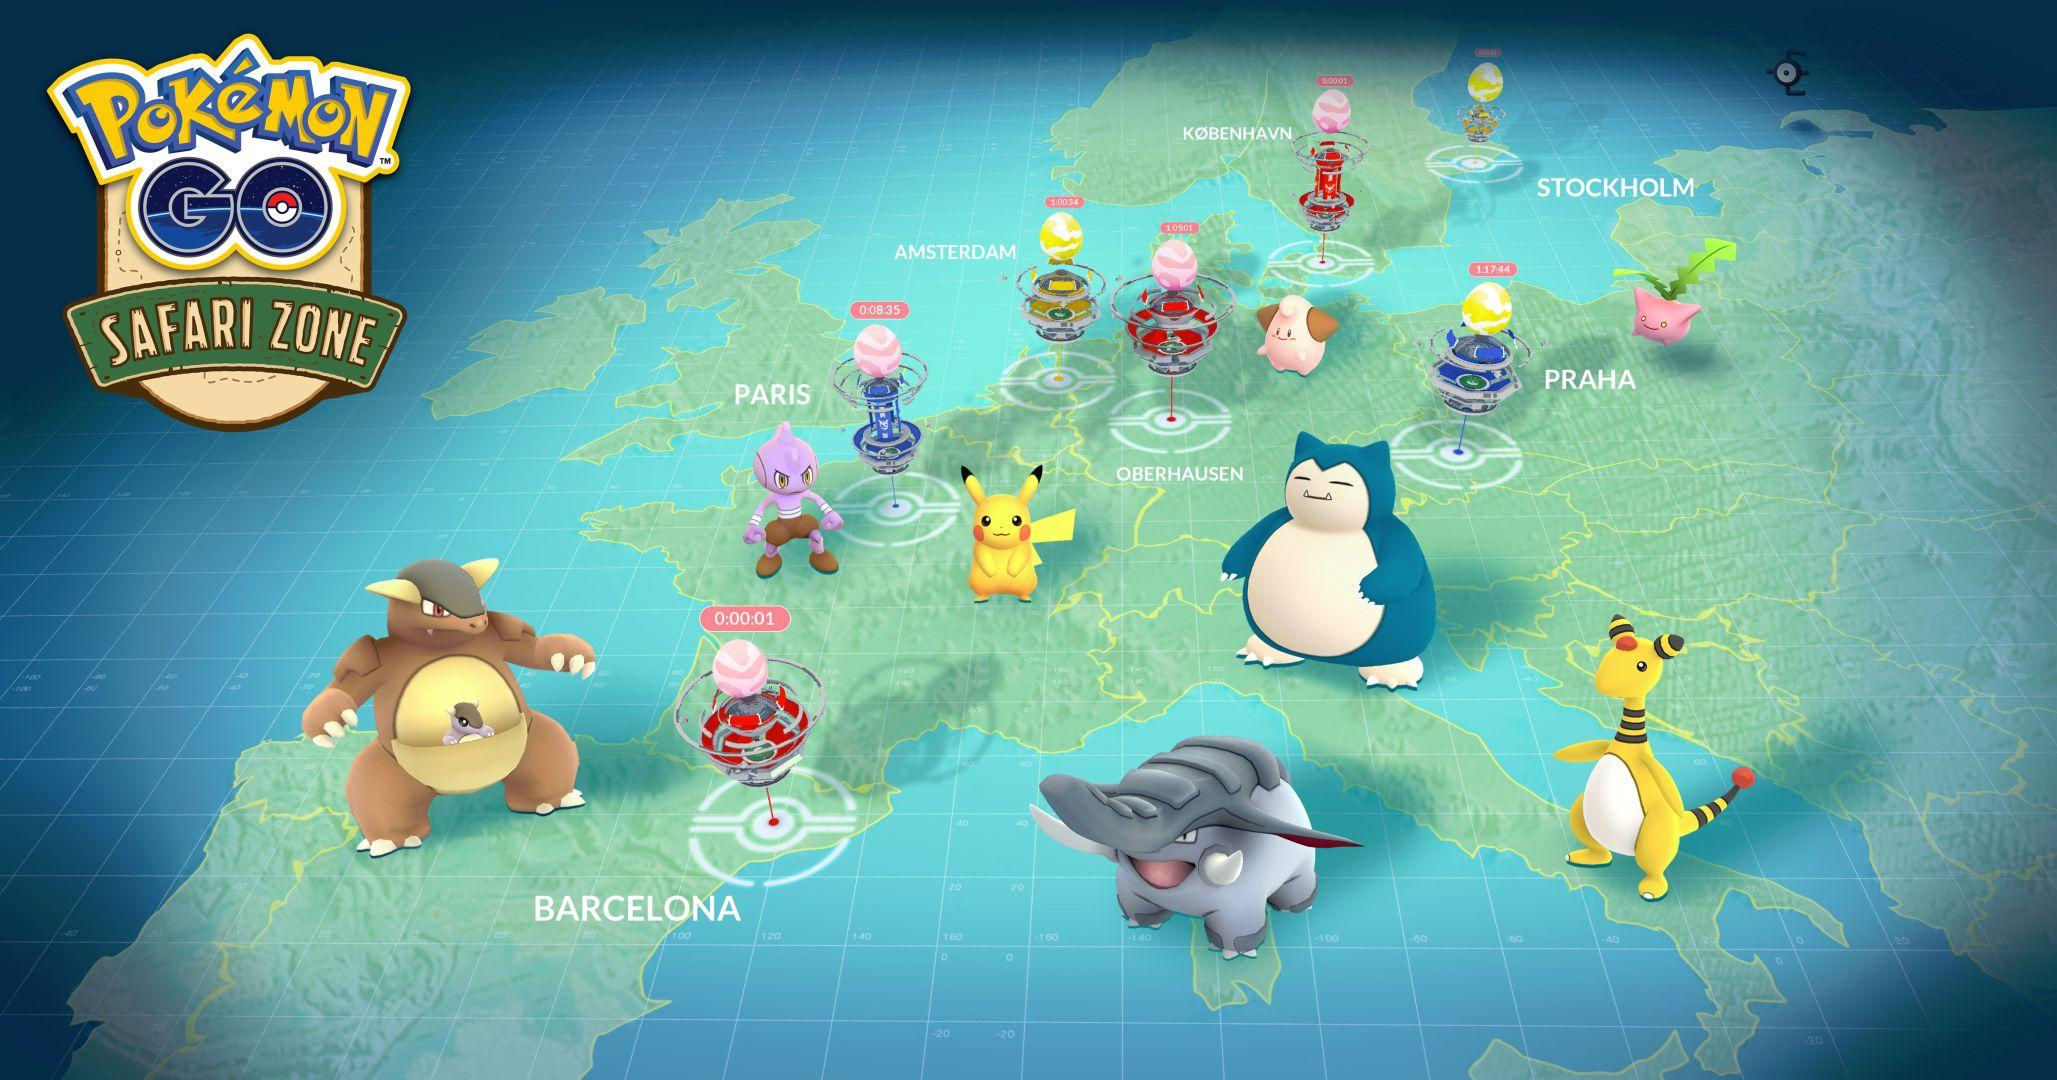 Pokémon Go' anniversary events cued up for Europe, Japan